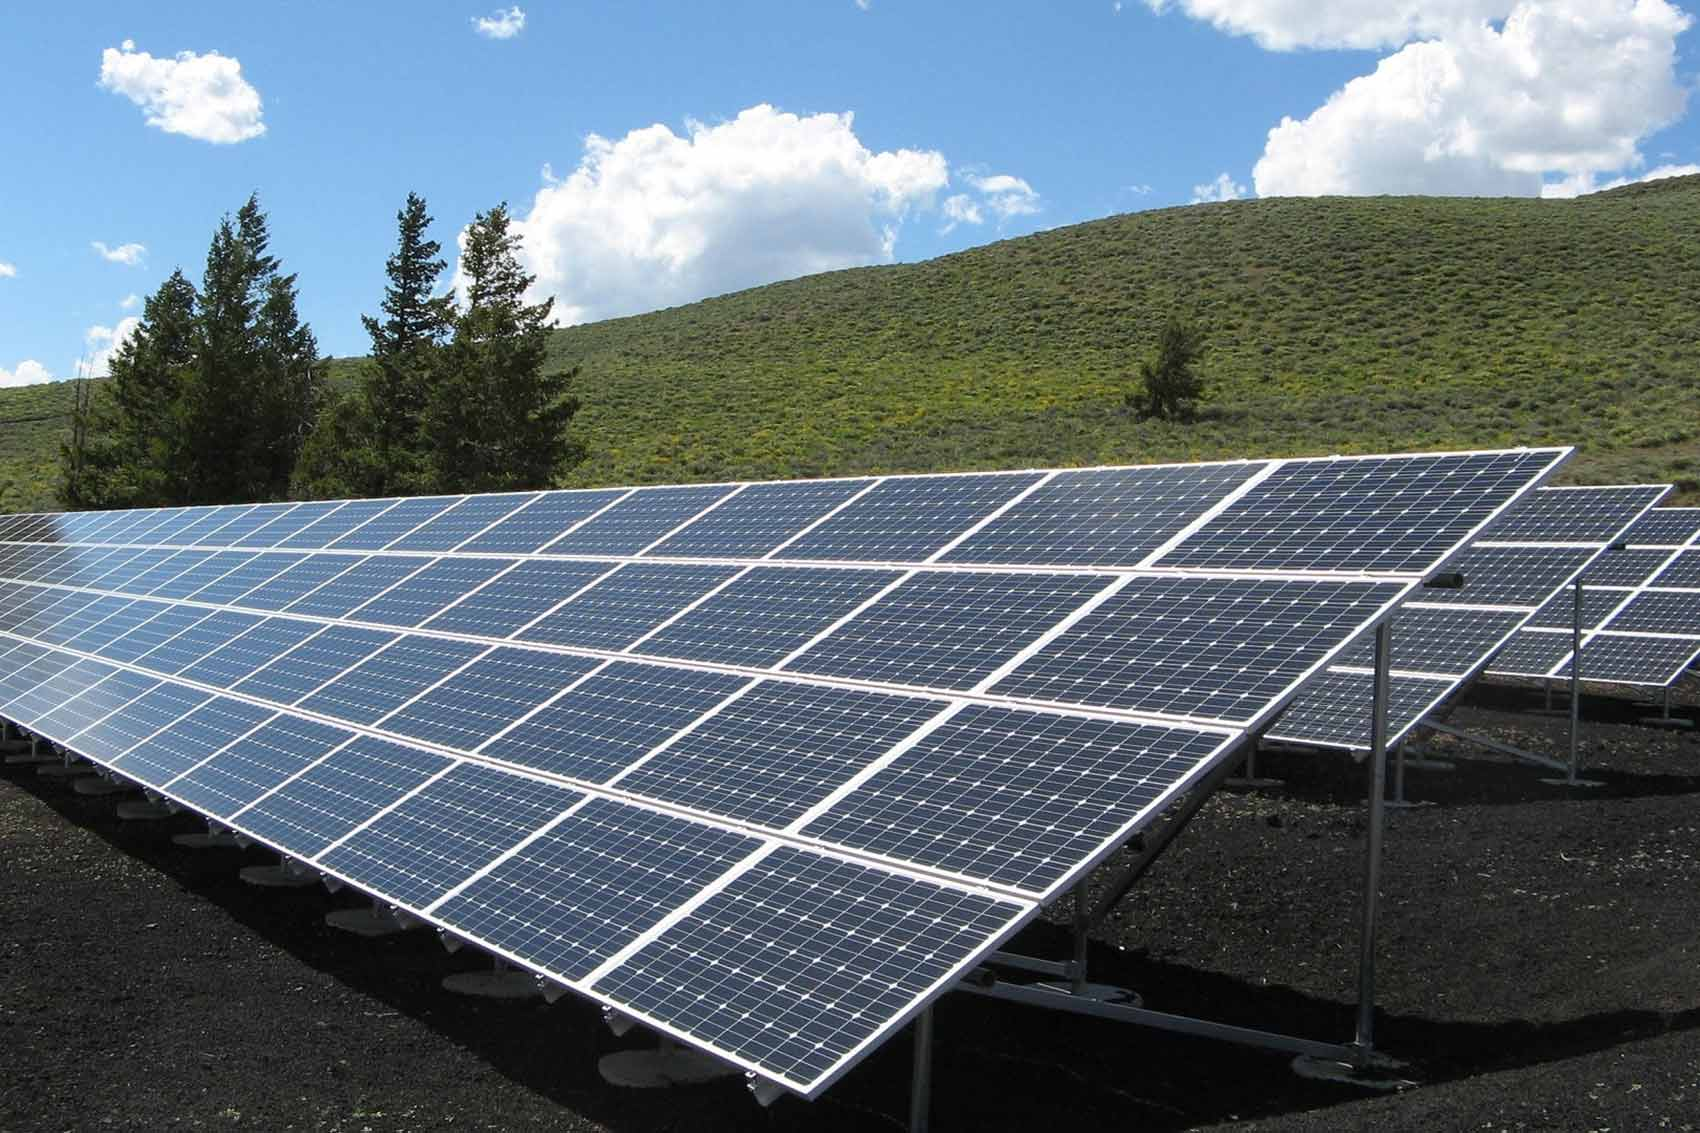 Analyzing the solar power market in India